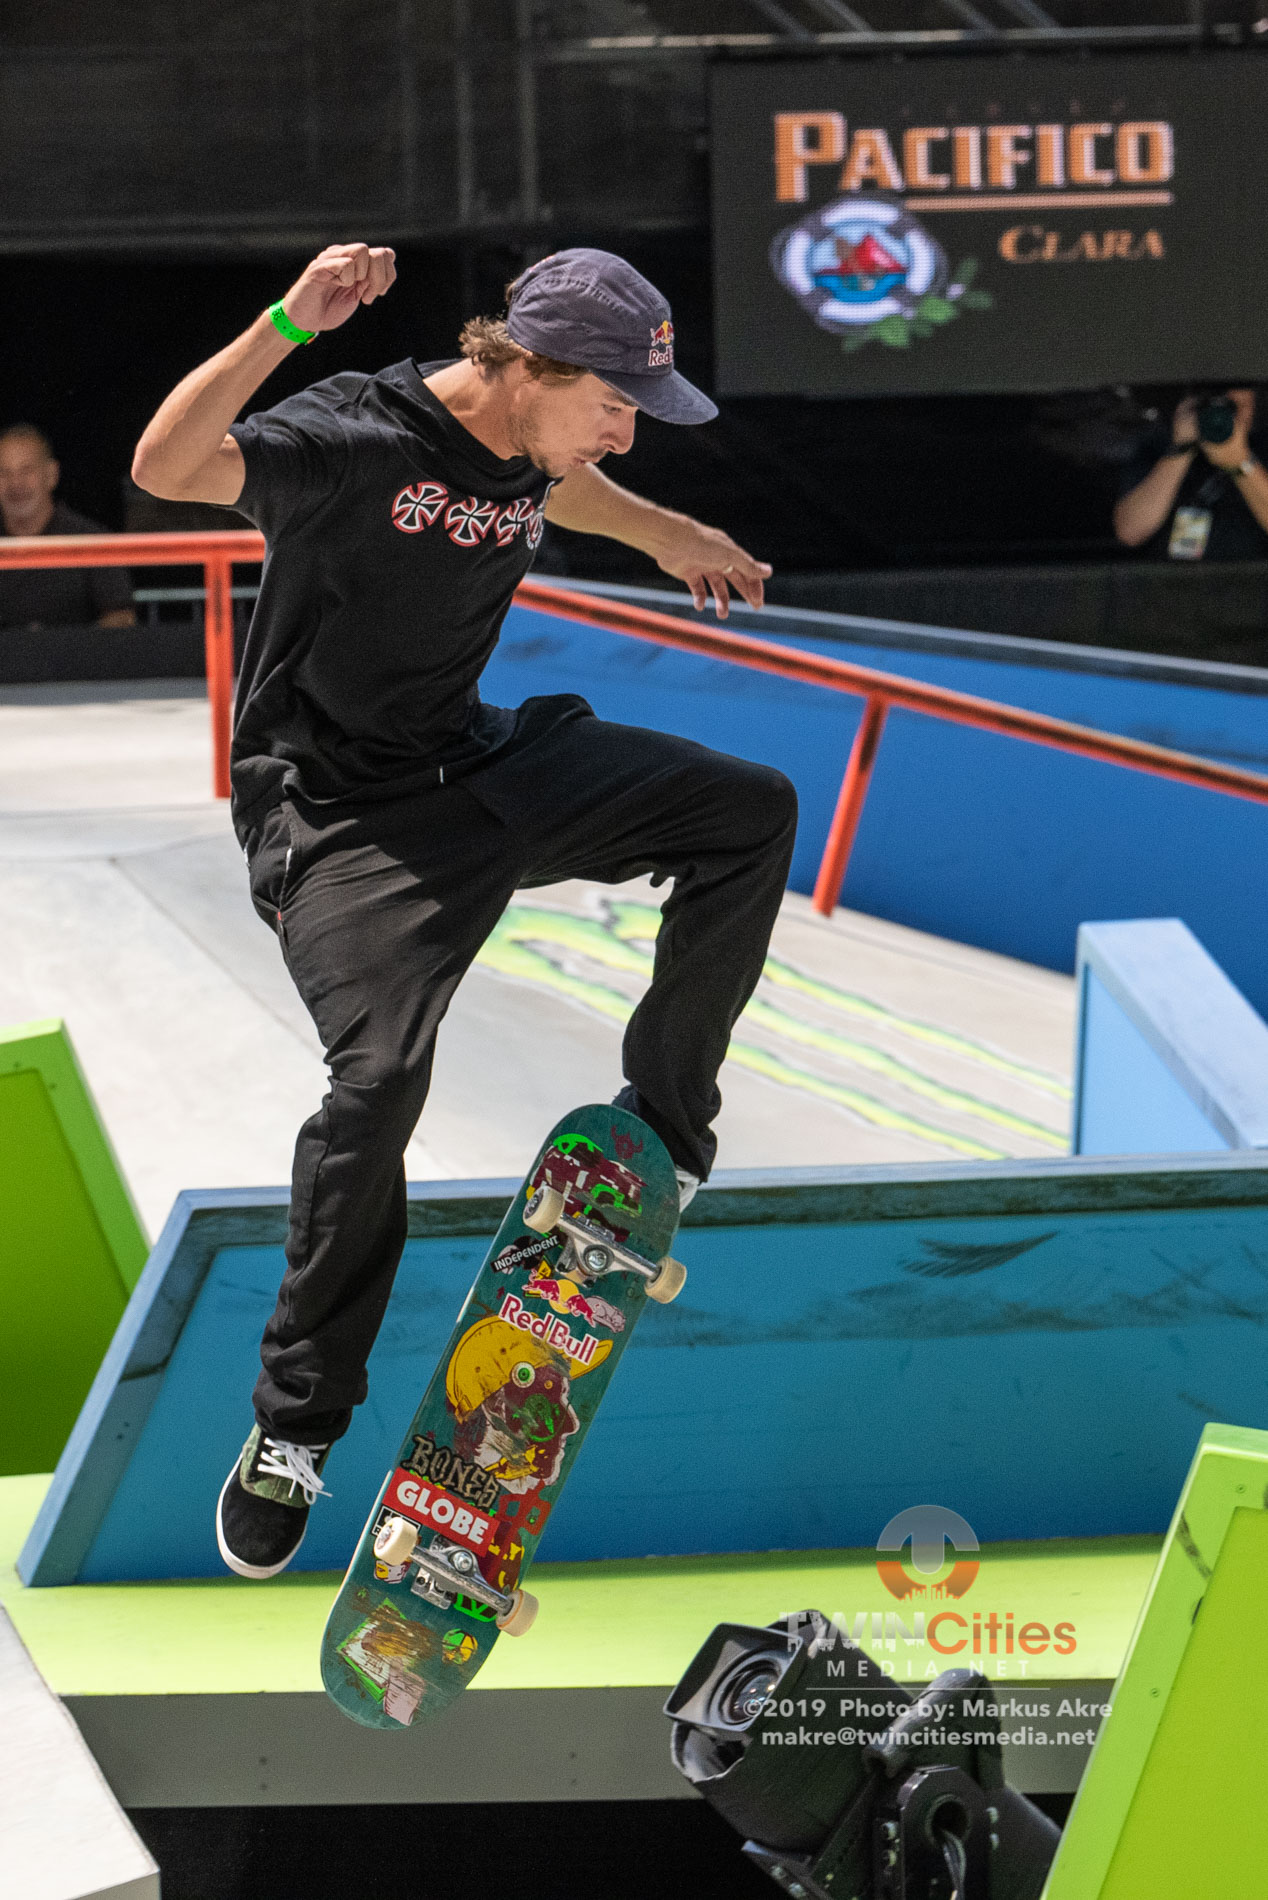 2019-X-Games-Day-4-Skateboard-Street-Best-Trick-3